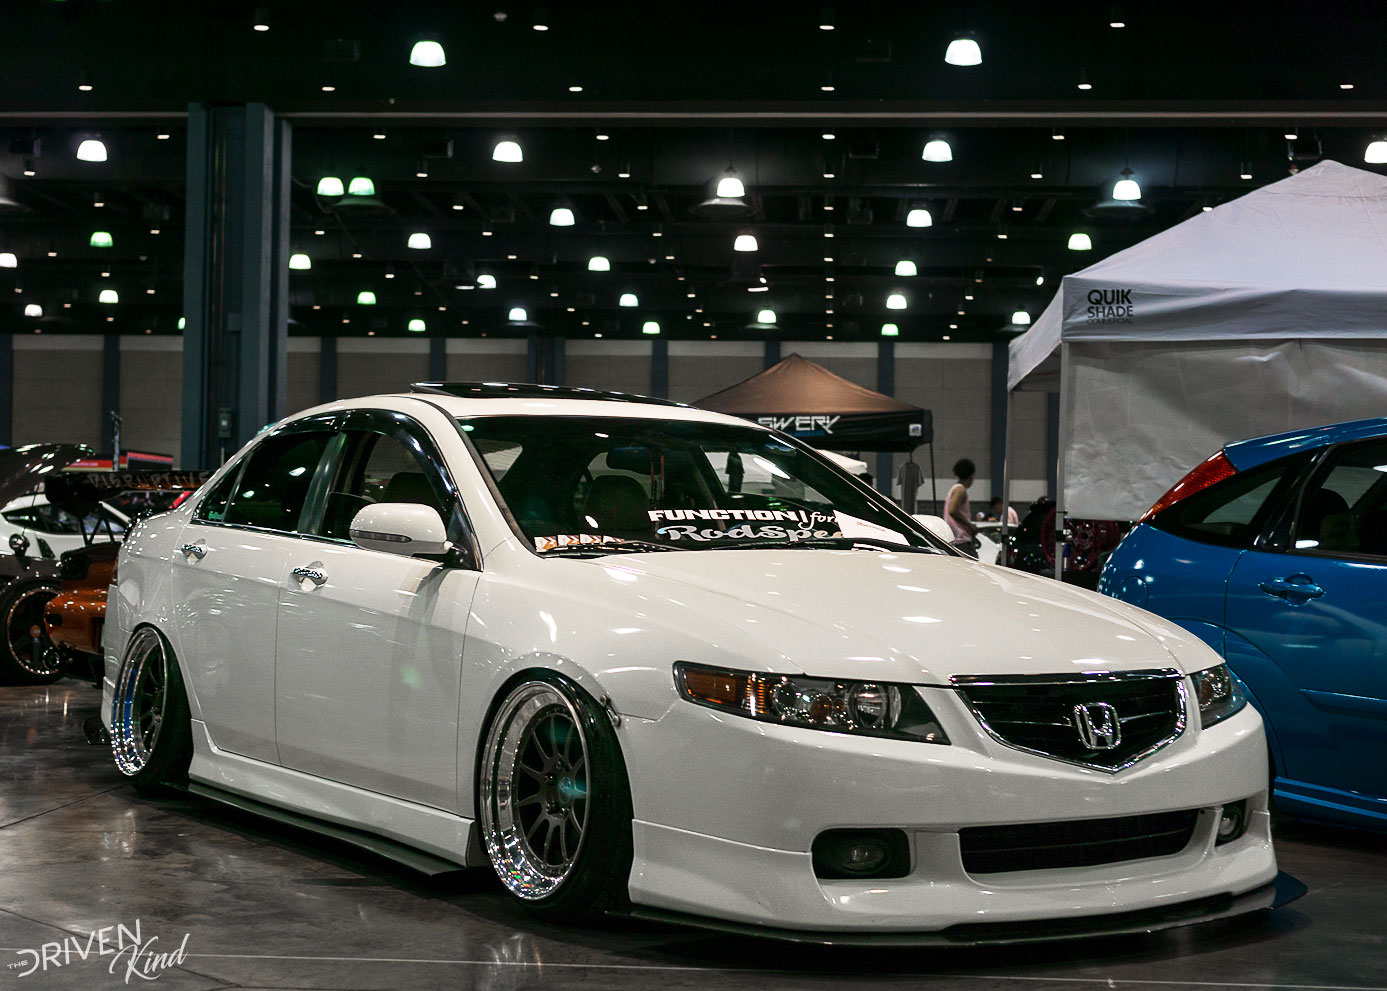 Honda Acura TL STANCENATION FLORIDA PALM BEACH CONVENTION CENTER 2017 Pt. 2 The Driven Kind Coverage